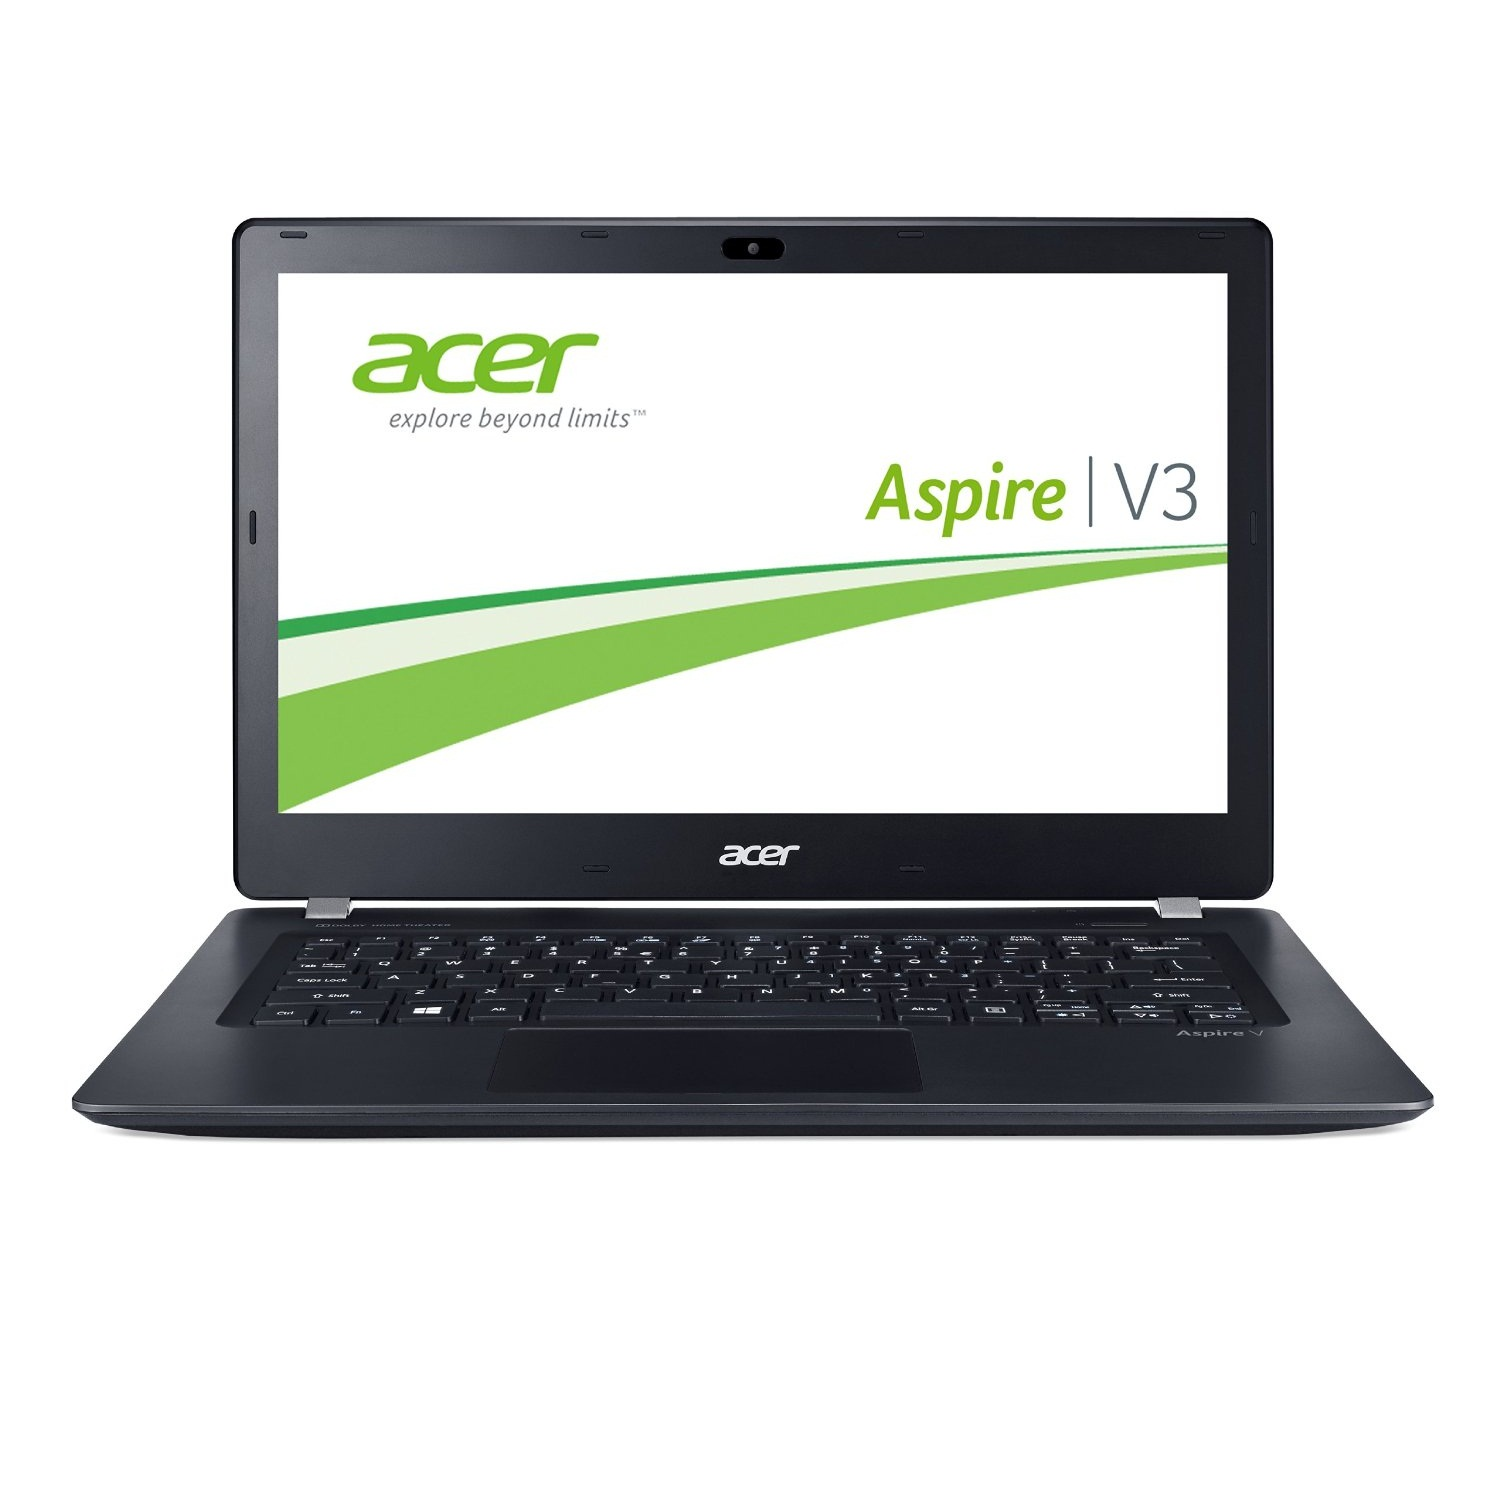 "Notebook Acer V3-371-33QP NX.MPGSV.018 Intel Core i3 5005 (2.2GHz) - RAM 4Gb - HDD 500GB+8GBSSD -  No DVD-RW - 13.3"""" inch - Linux"